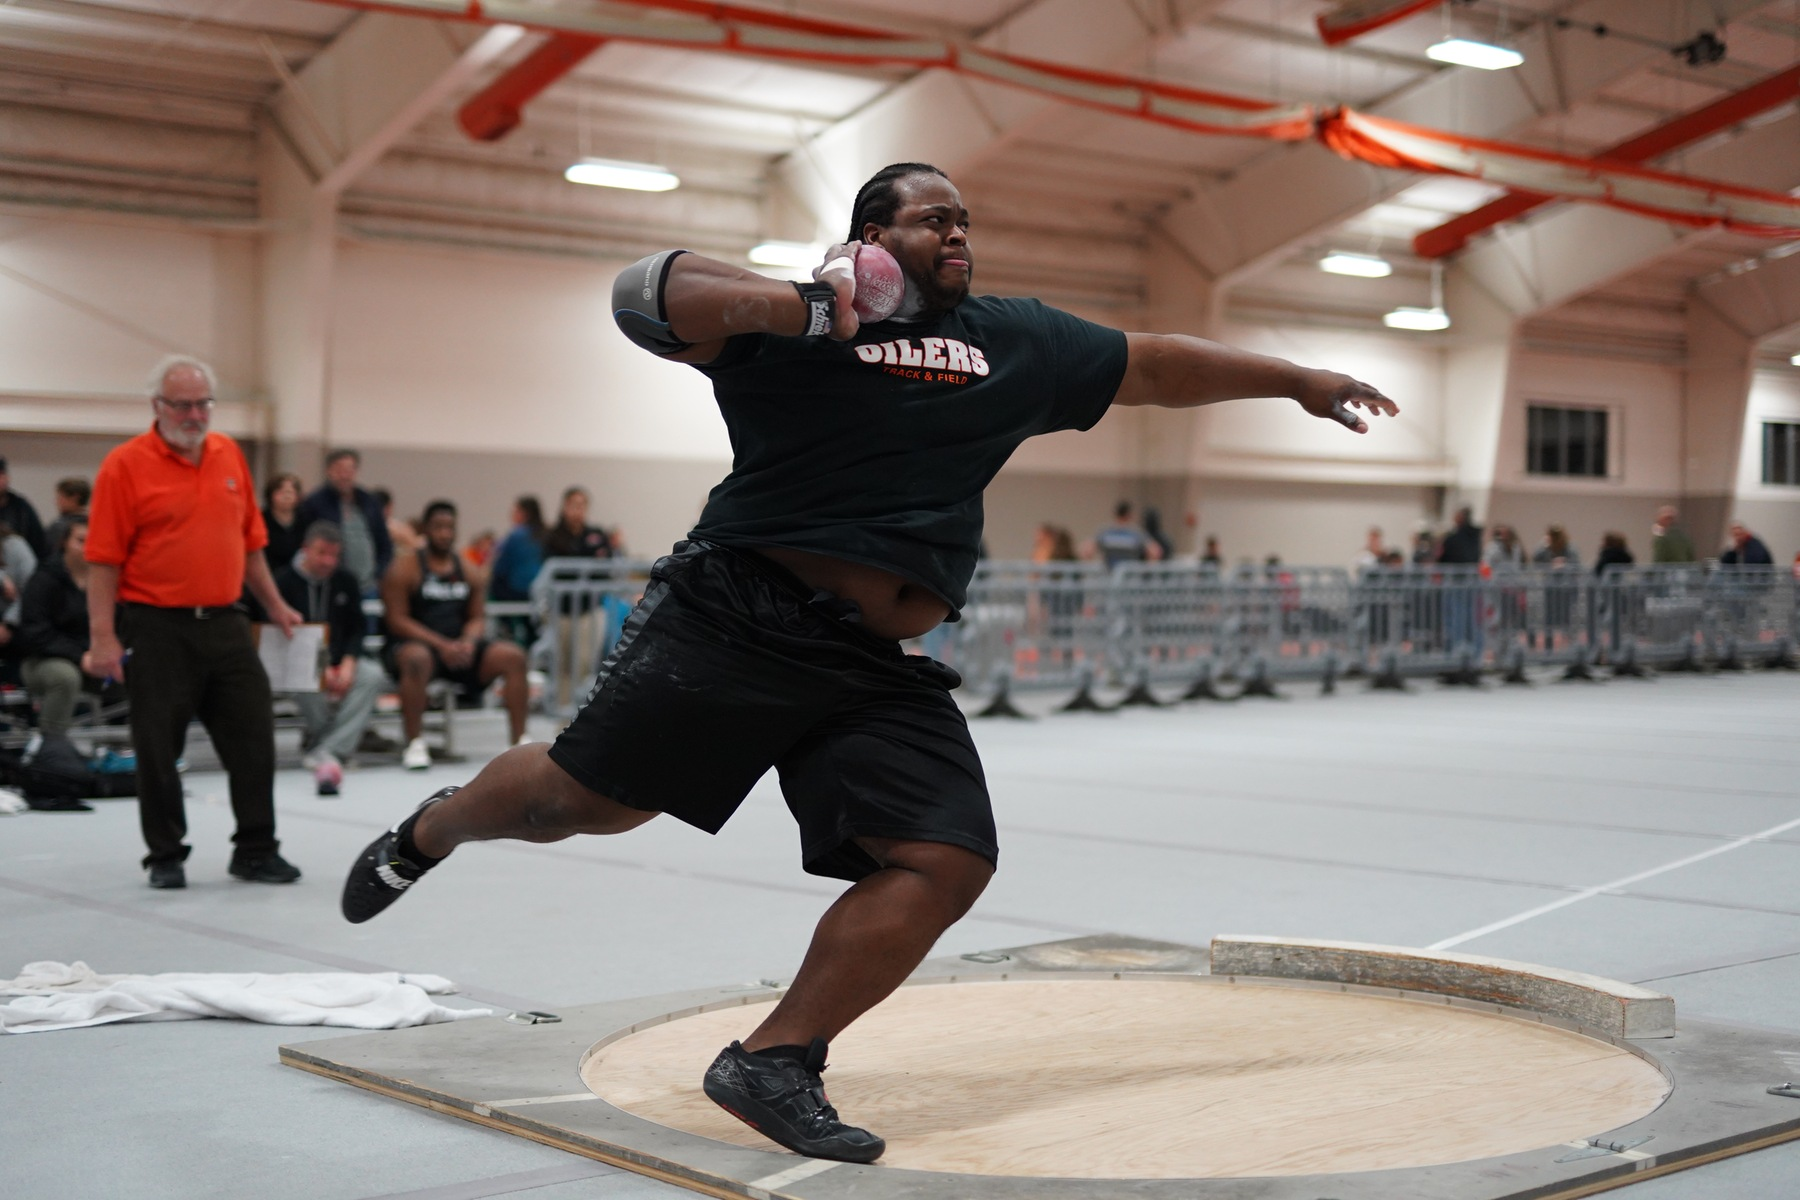 Henry Named National Champion in Men's Shot Put